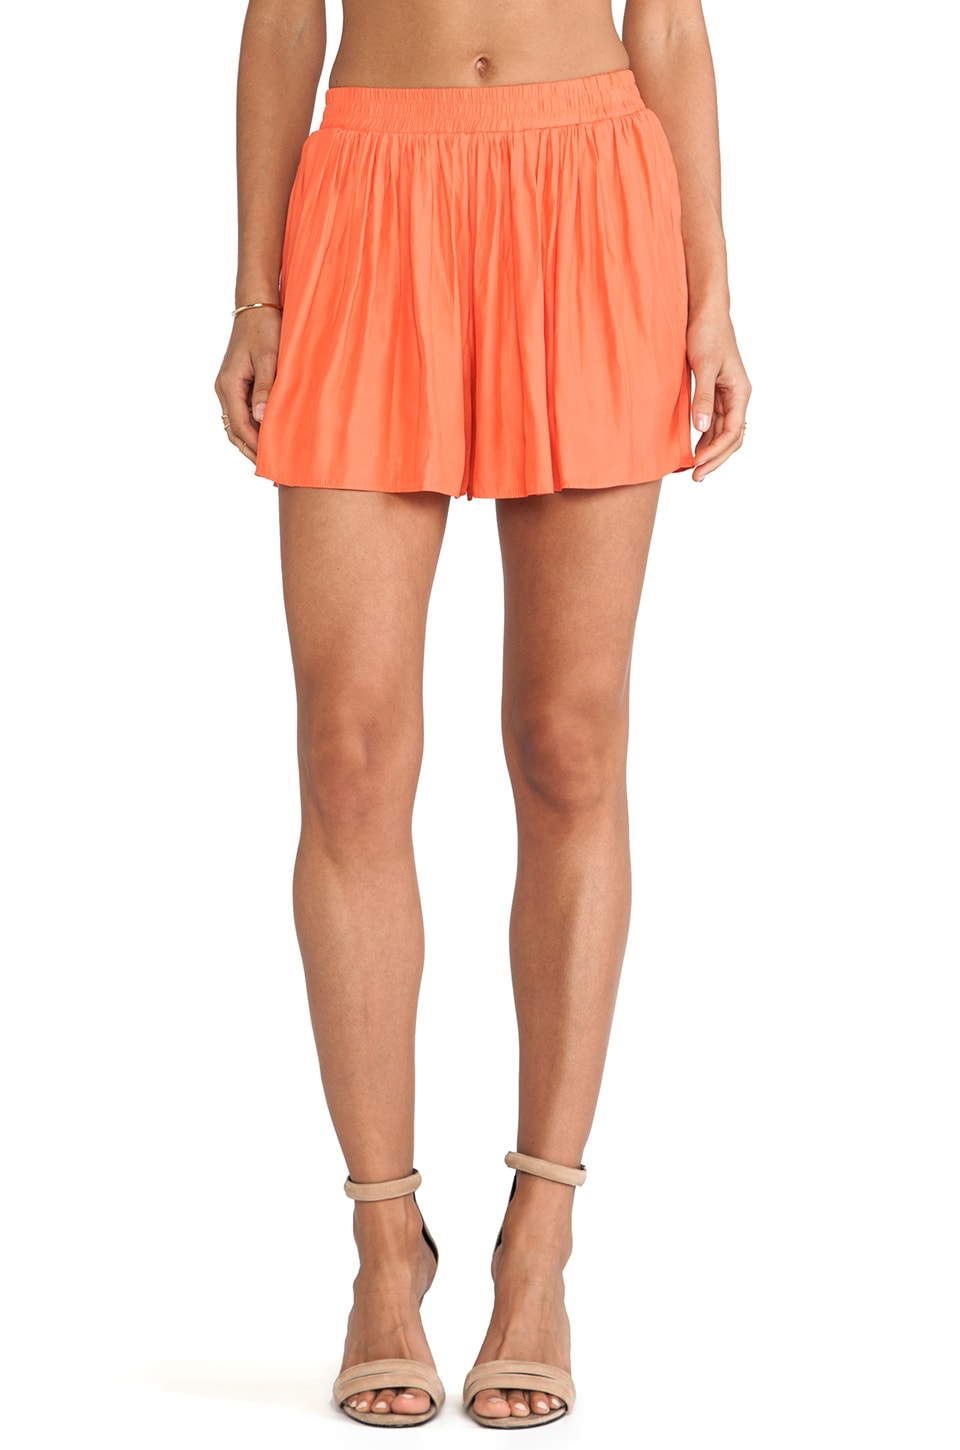 BCBGMAXAZRIA Shorts in Ambroisa